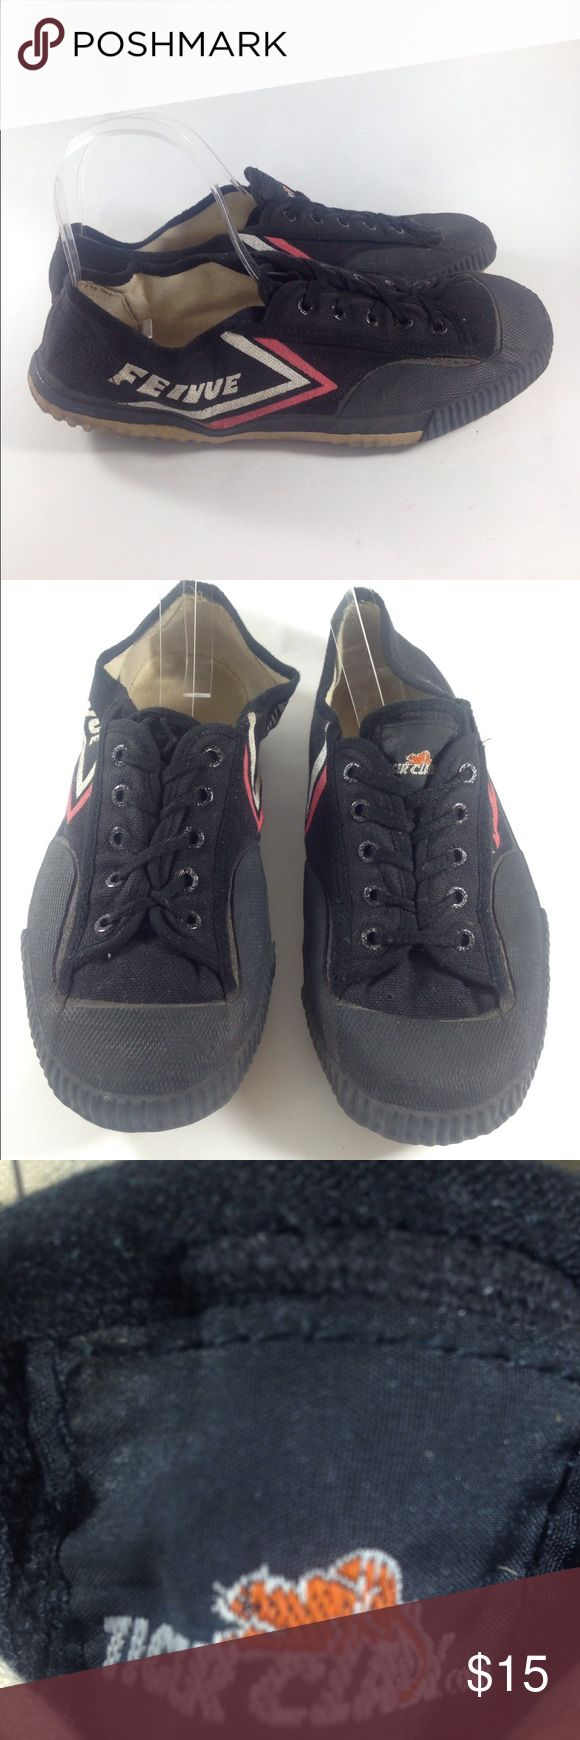 Men's Feivue Tiger Claw Martial Arts Shoes Size 12 Up for sale is this durable pair of Feivue Tiger Claw Martial Arts Shoes!  Men's Size 12 Eur 46   CONDITION: Good Condition! Some signs of wear, right foot is bent out of shape due to storage. Fits fine when worn. Feiyue Shoes Athletic Shoes